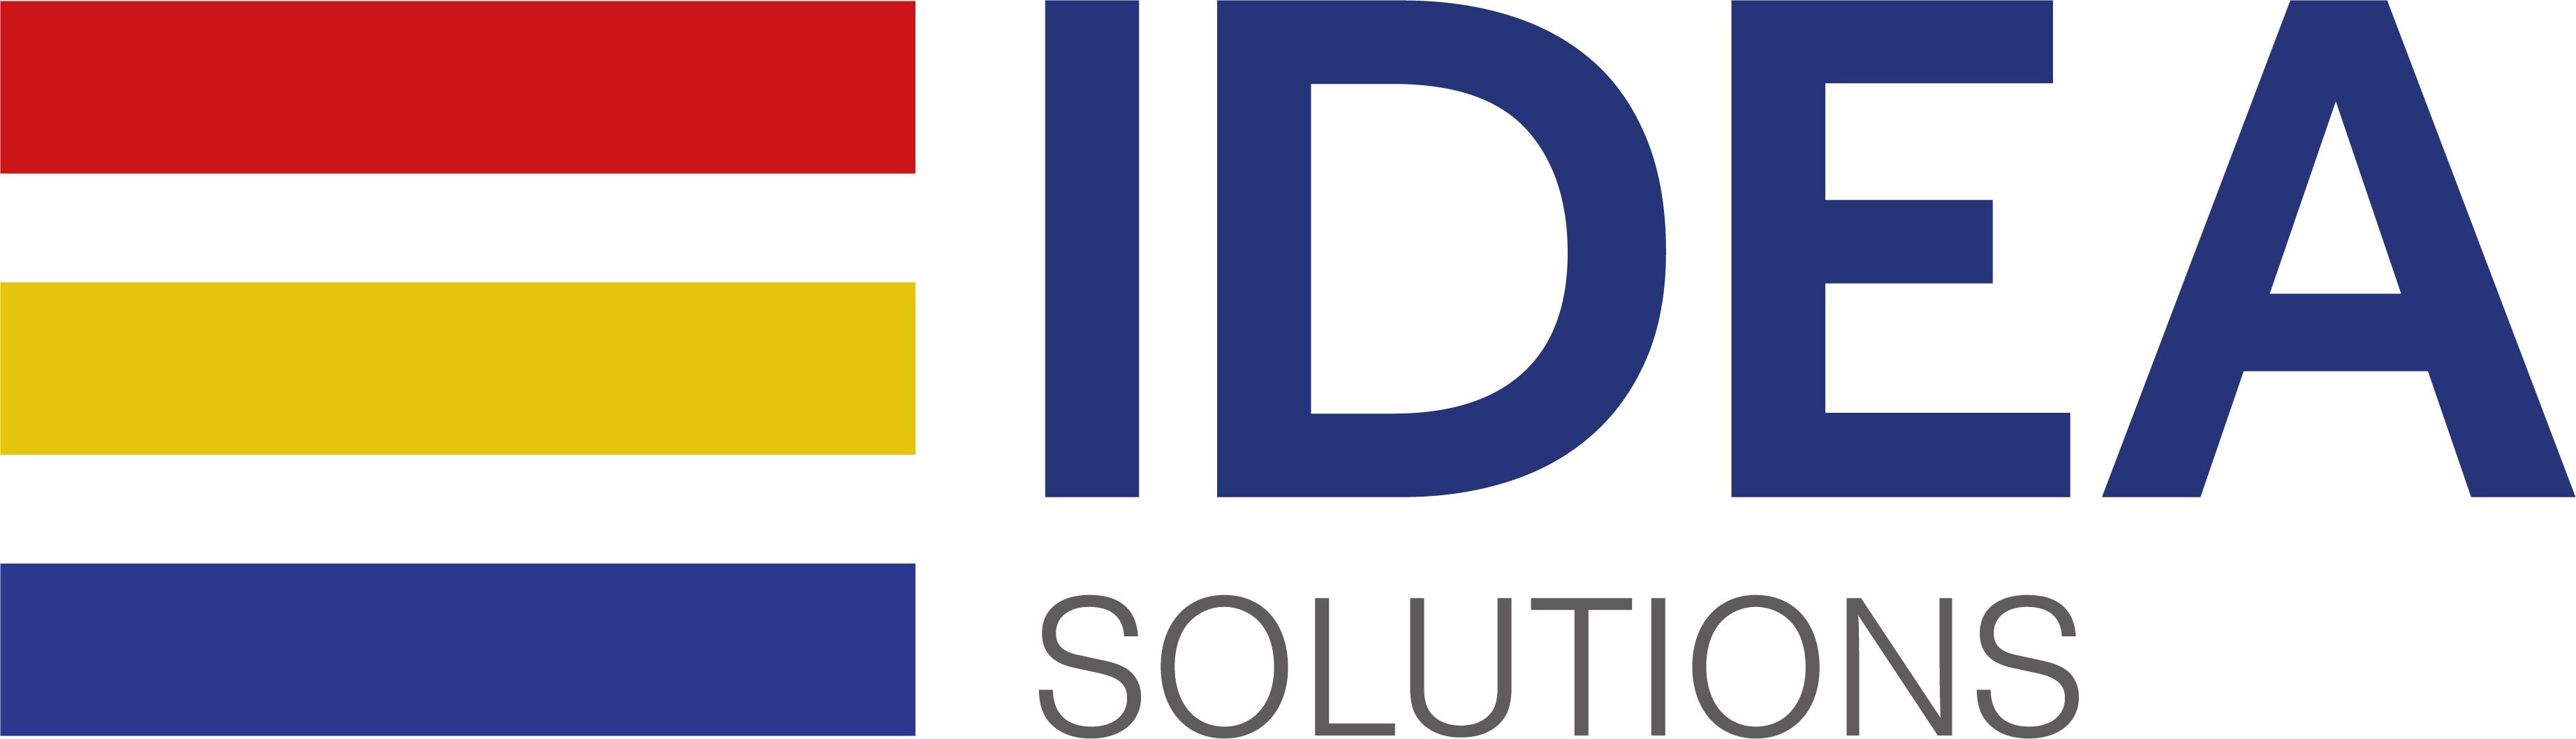 IDEA Solutions Inc. -